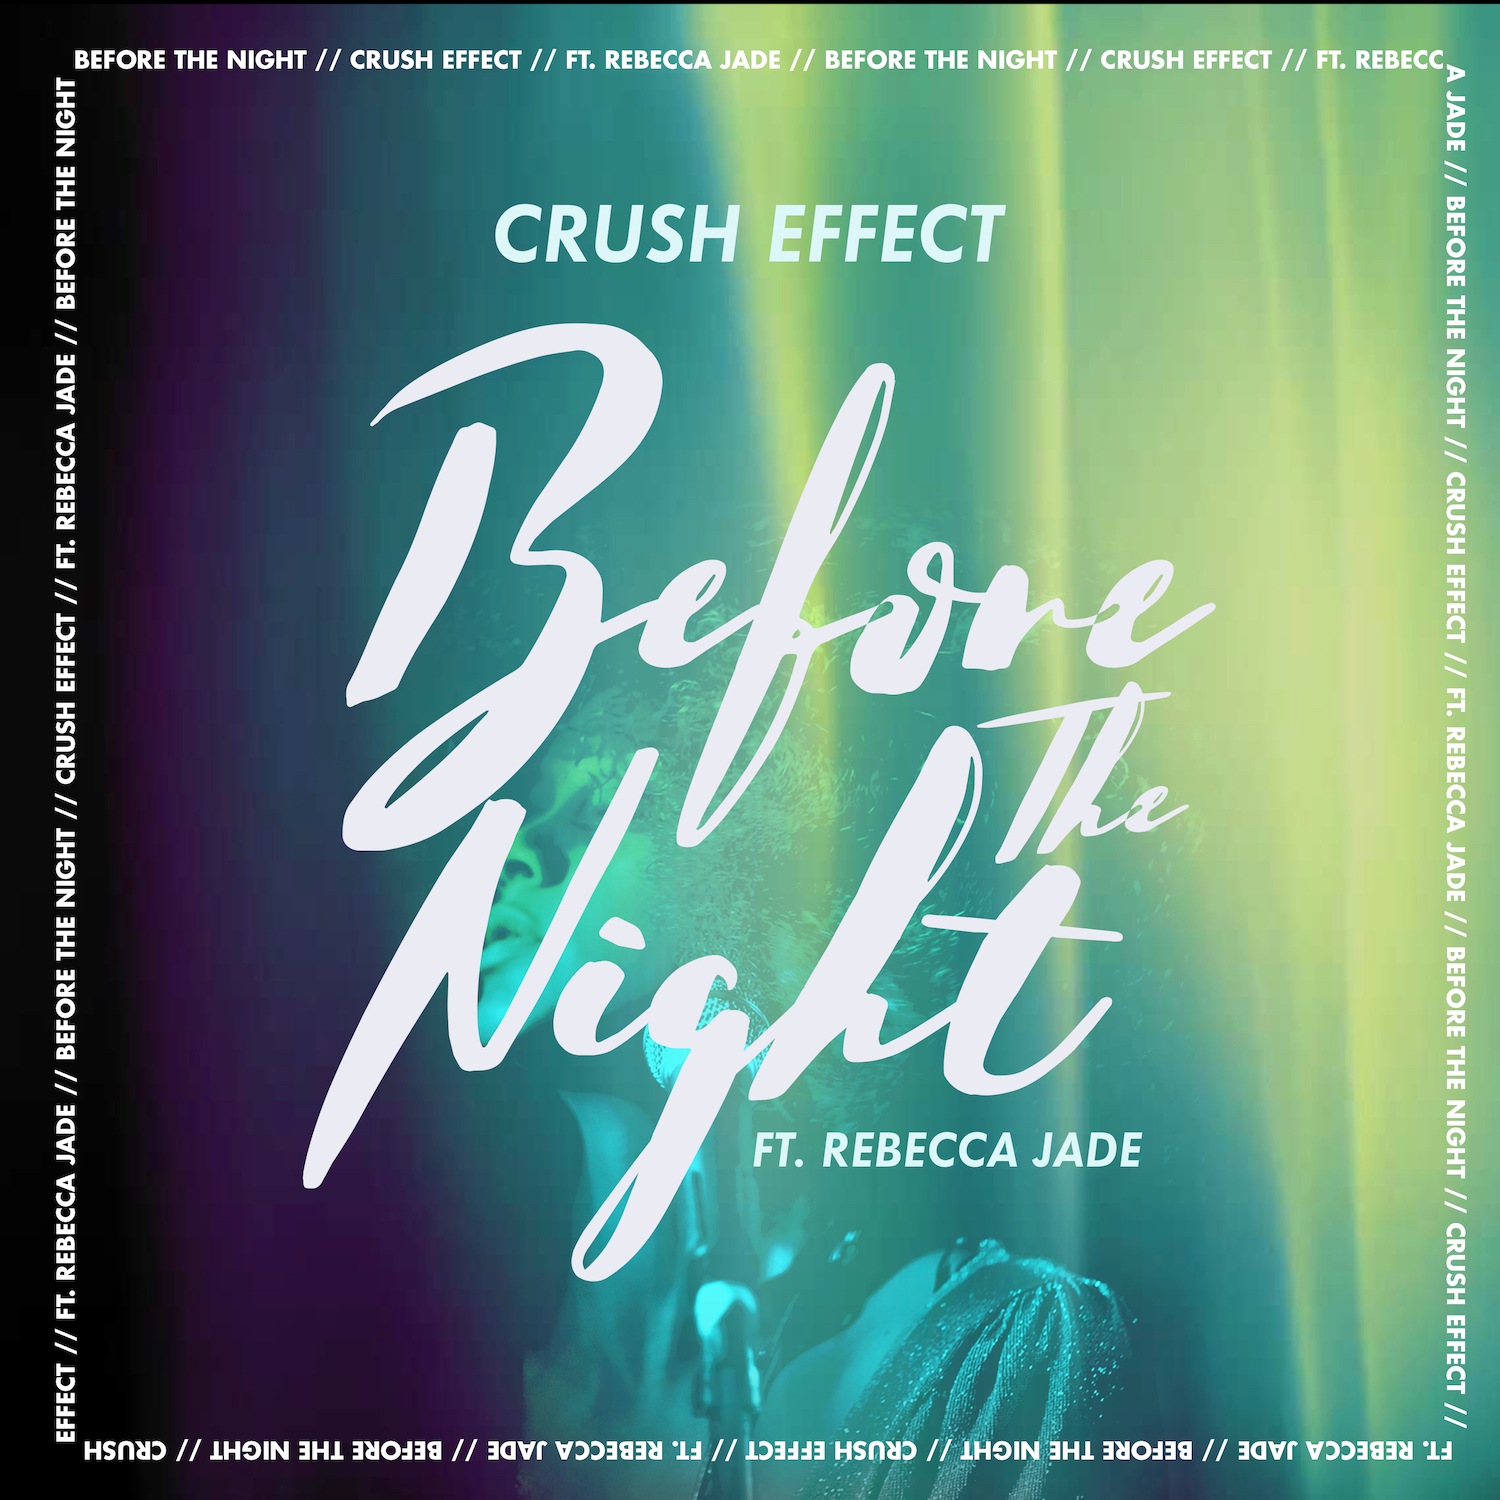 Before The Night (feat. Rebecca Jade)  - 2017